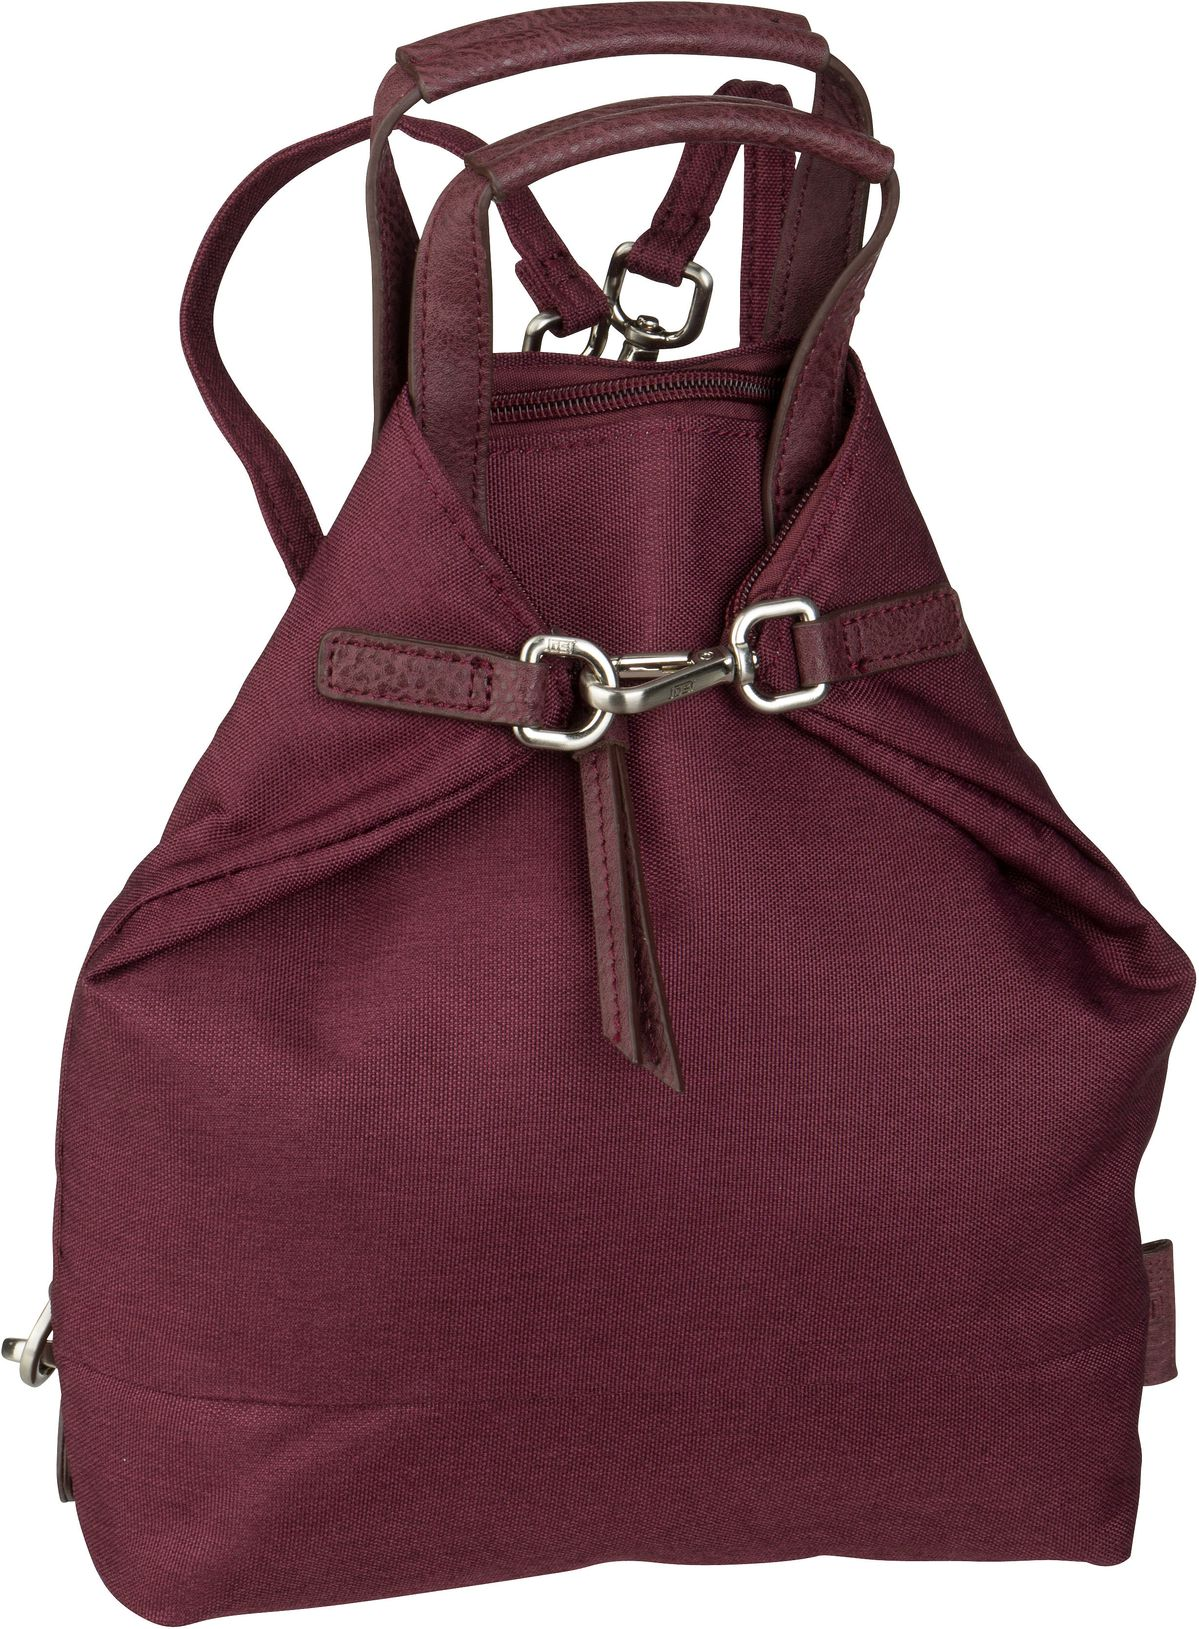 Jost Rucksack / Daypack 1108 X-Change Bag Mini Bordeaux